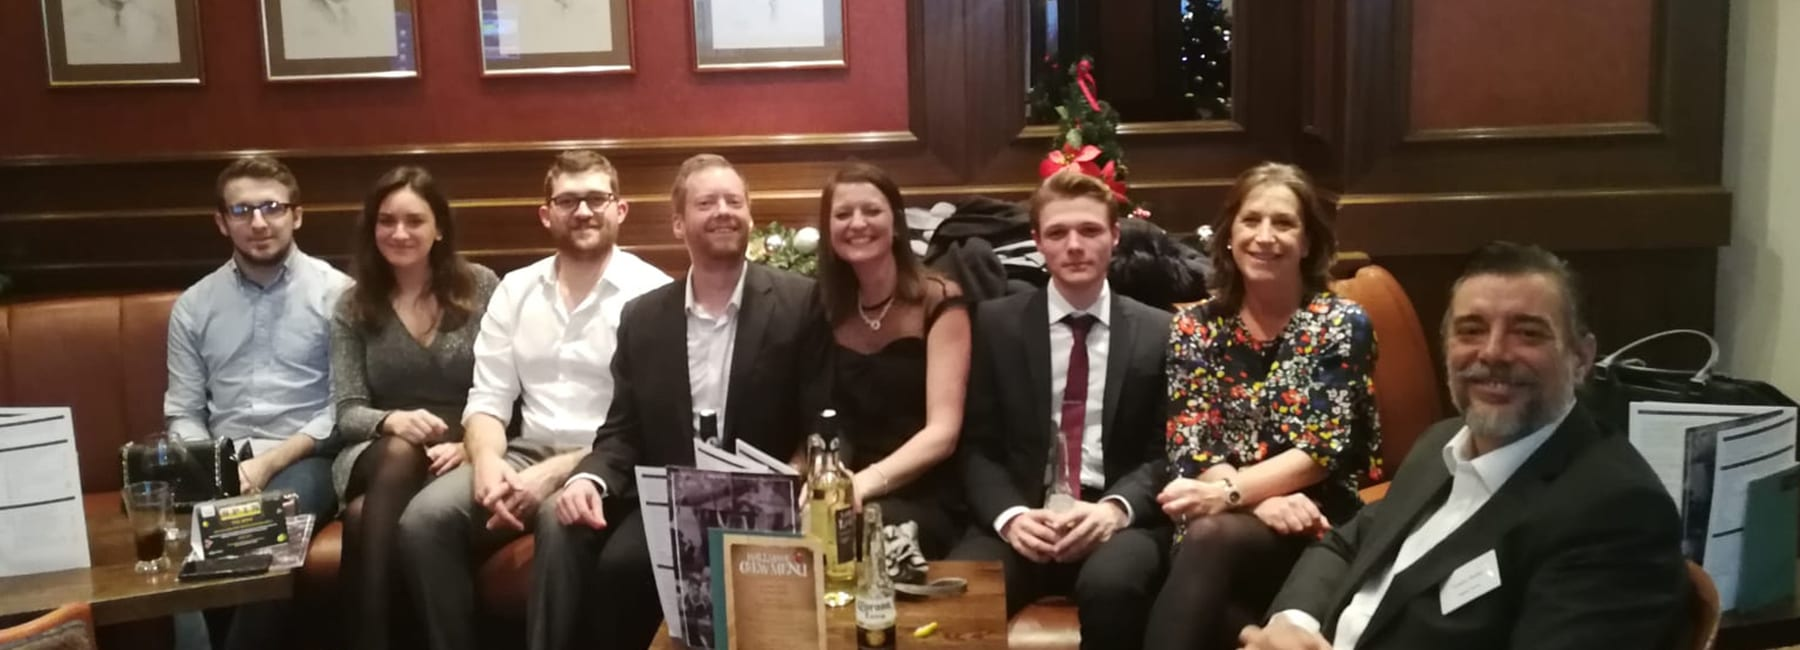 Digital Storm Attend the Annual DCCI Christmas Lunch